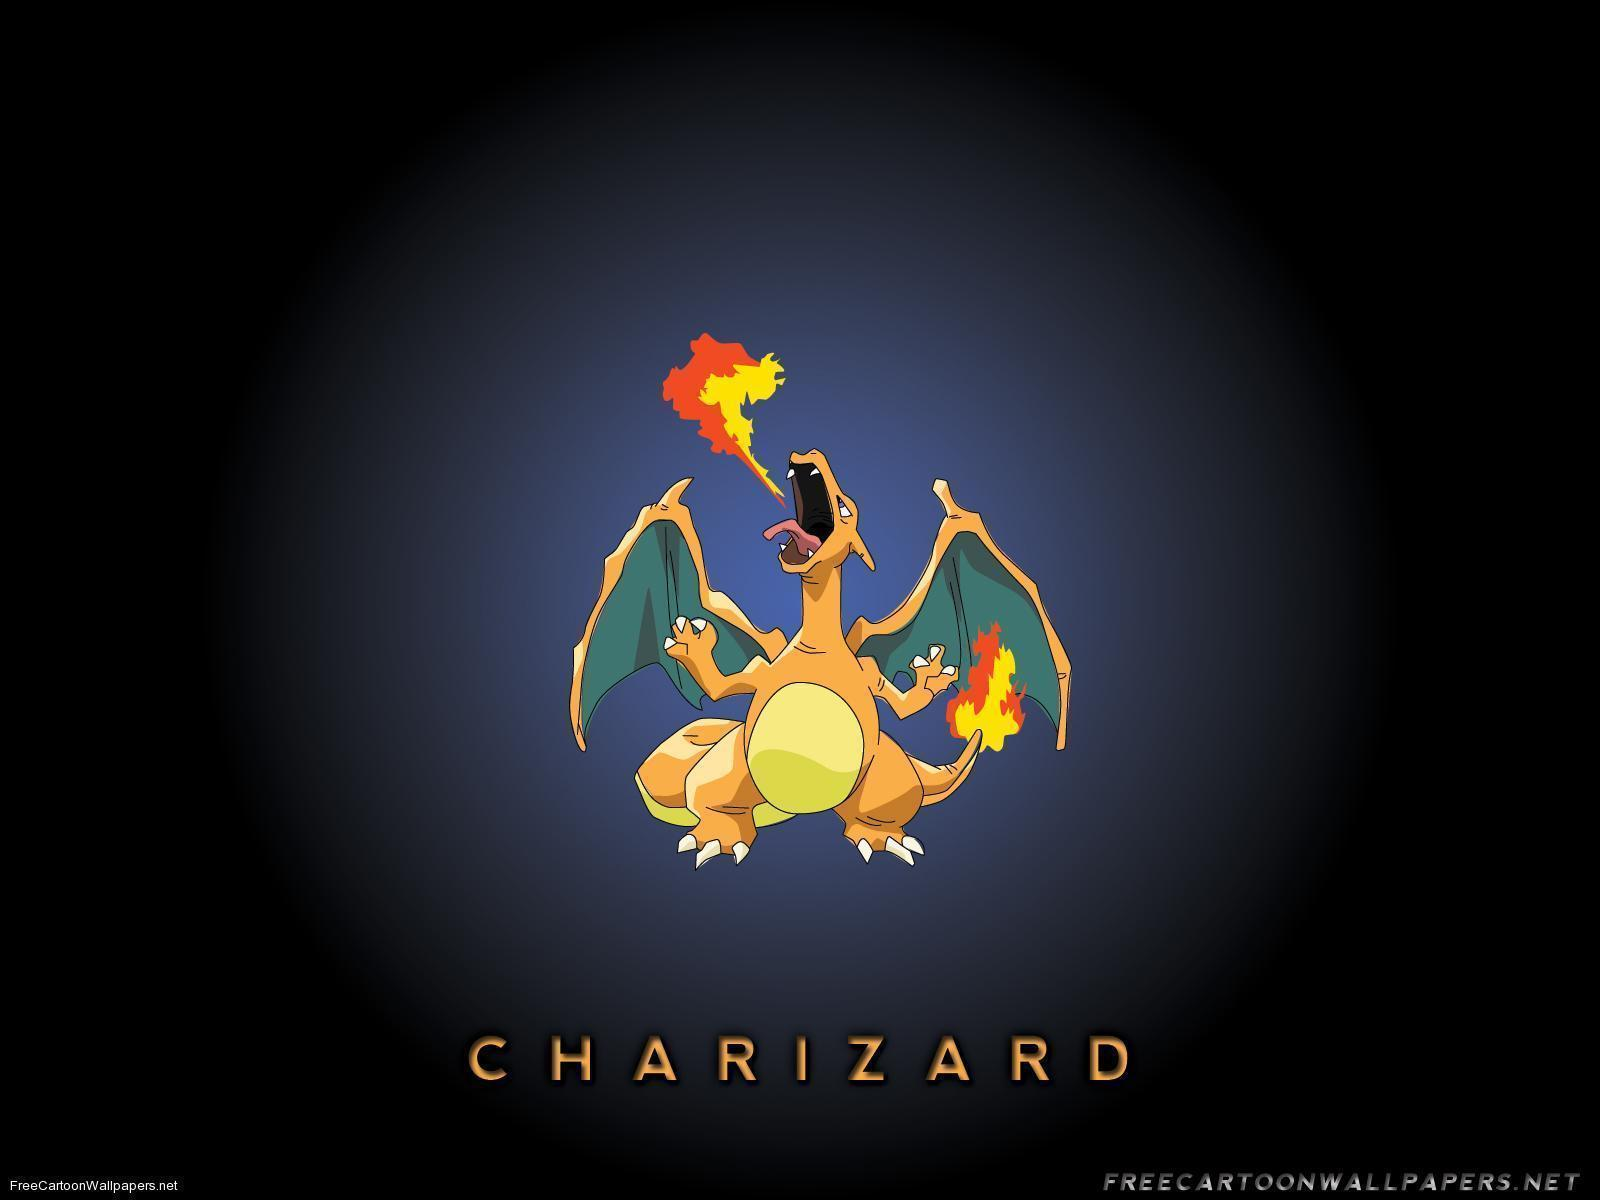 Wallpaper download pokemon - Charizard Pokemon Wallpaper Minimalistic Wallpapers 1920x1080px